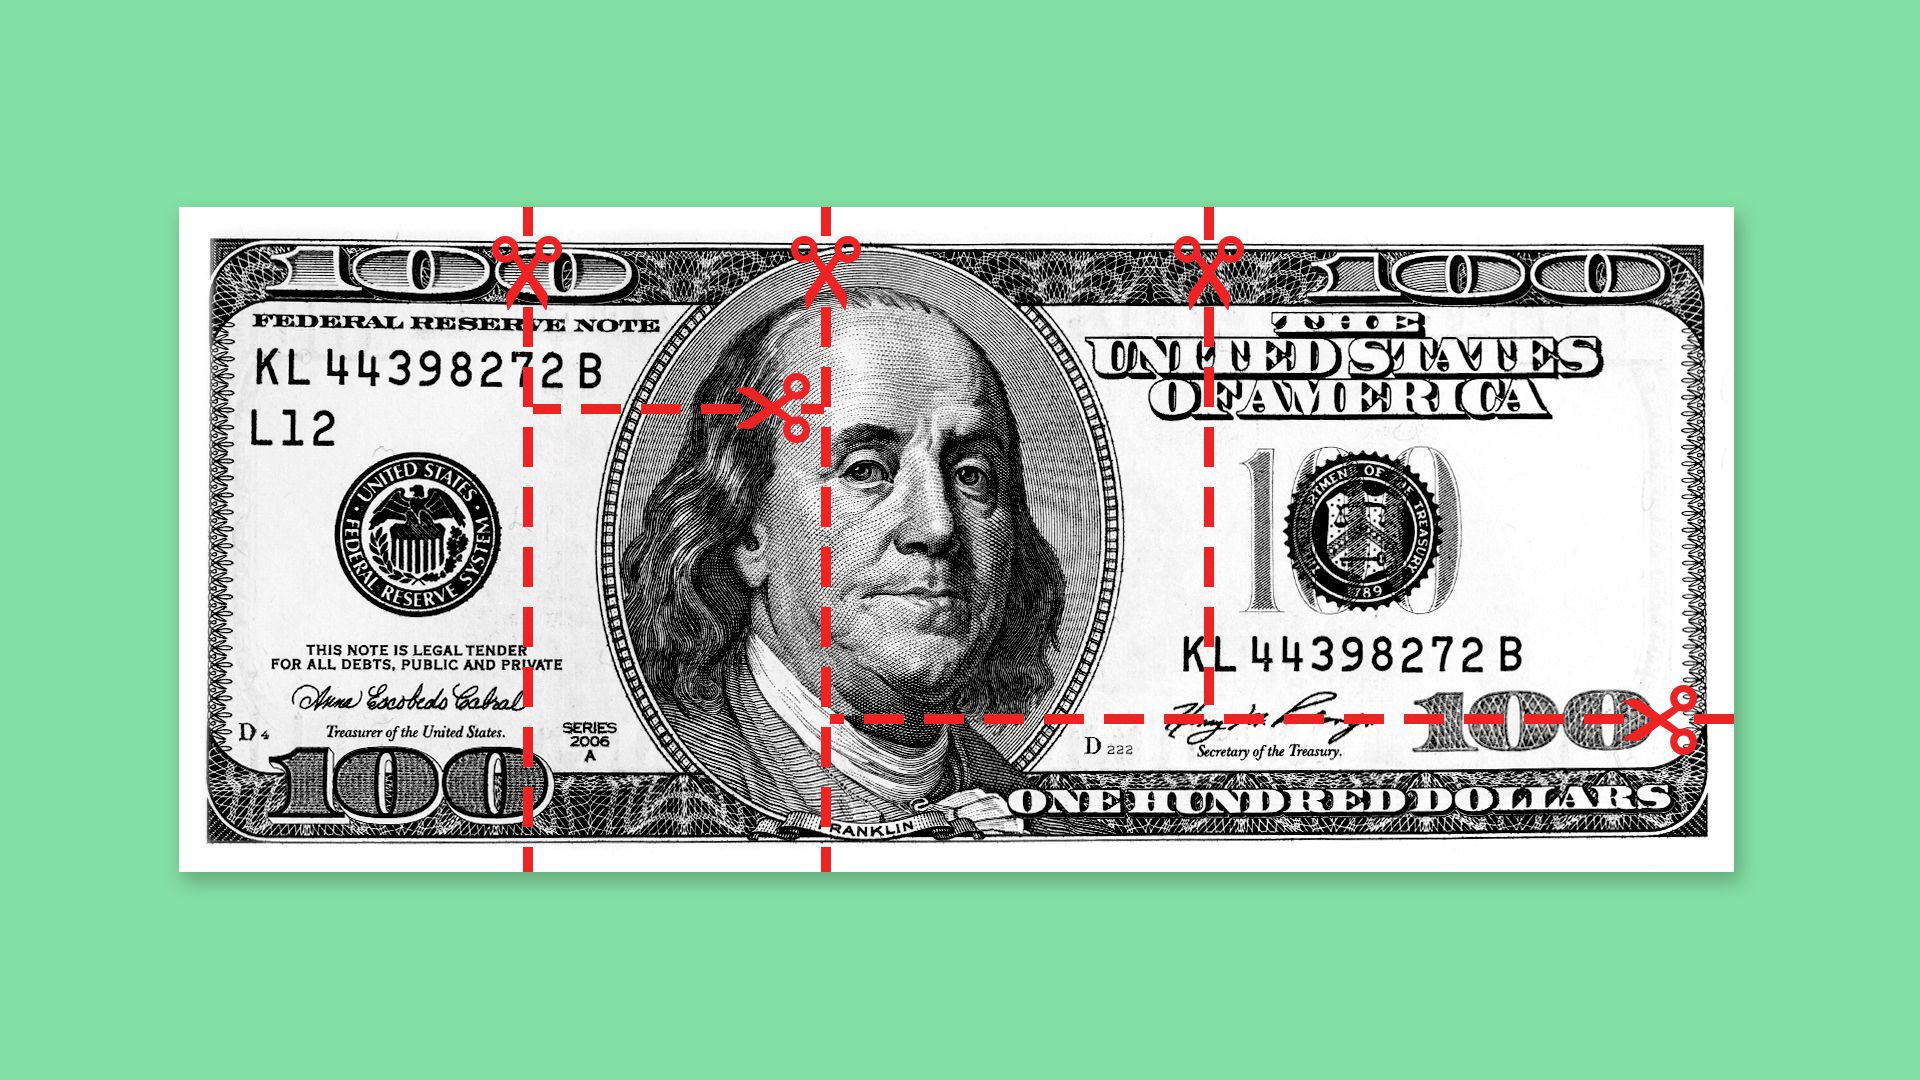 Illustration of a hundred dollar bill with cut lines dividing it up into pieces.